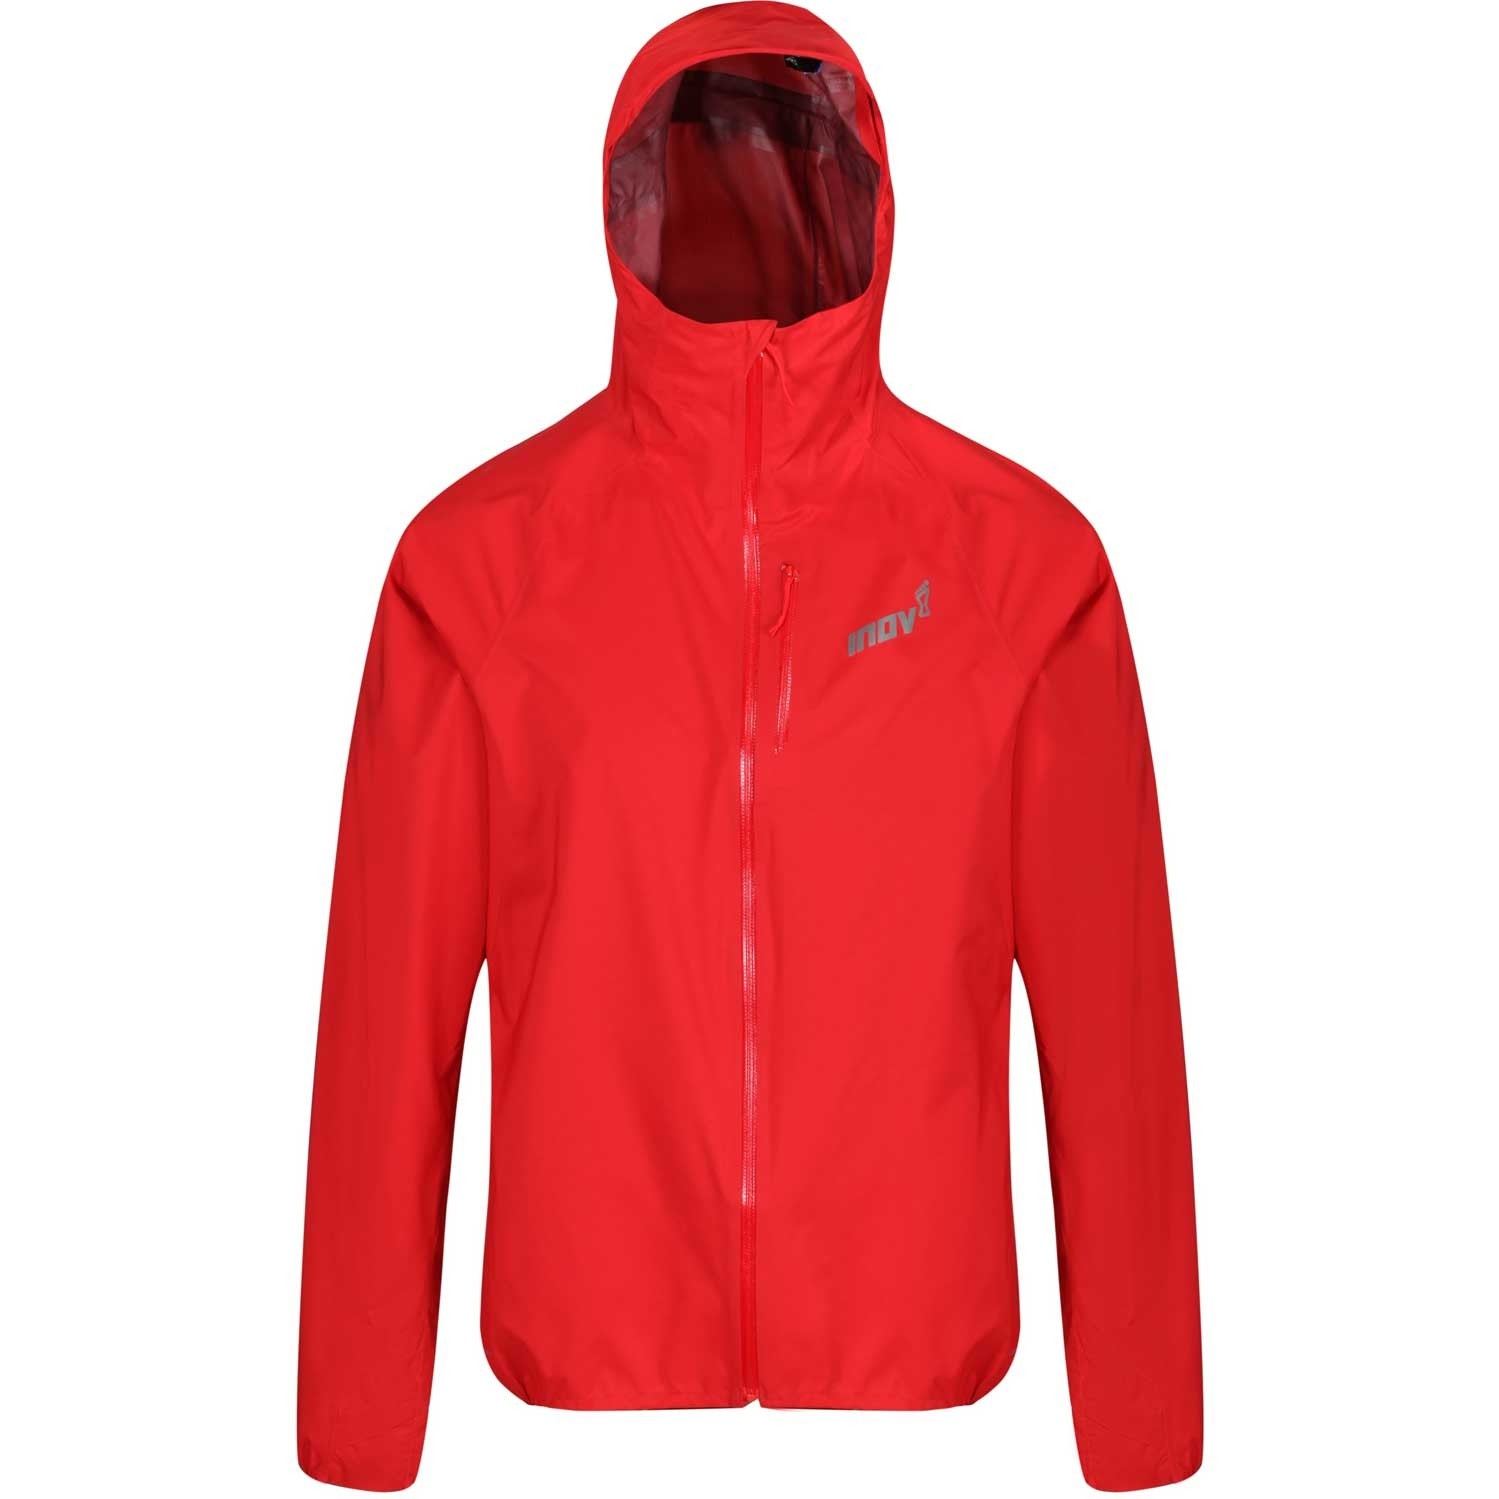 Inov-8 Stormshell FZ Waterproof Running Jacket - Men's - Red